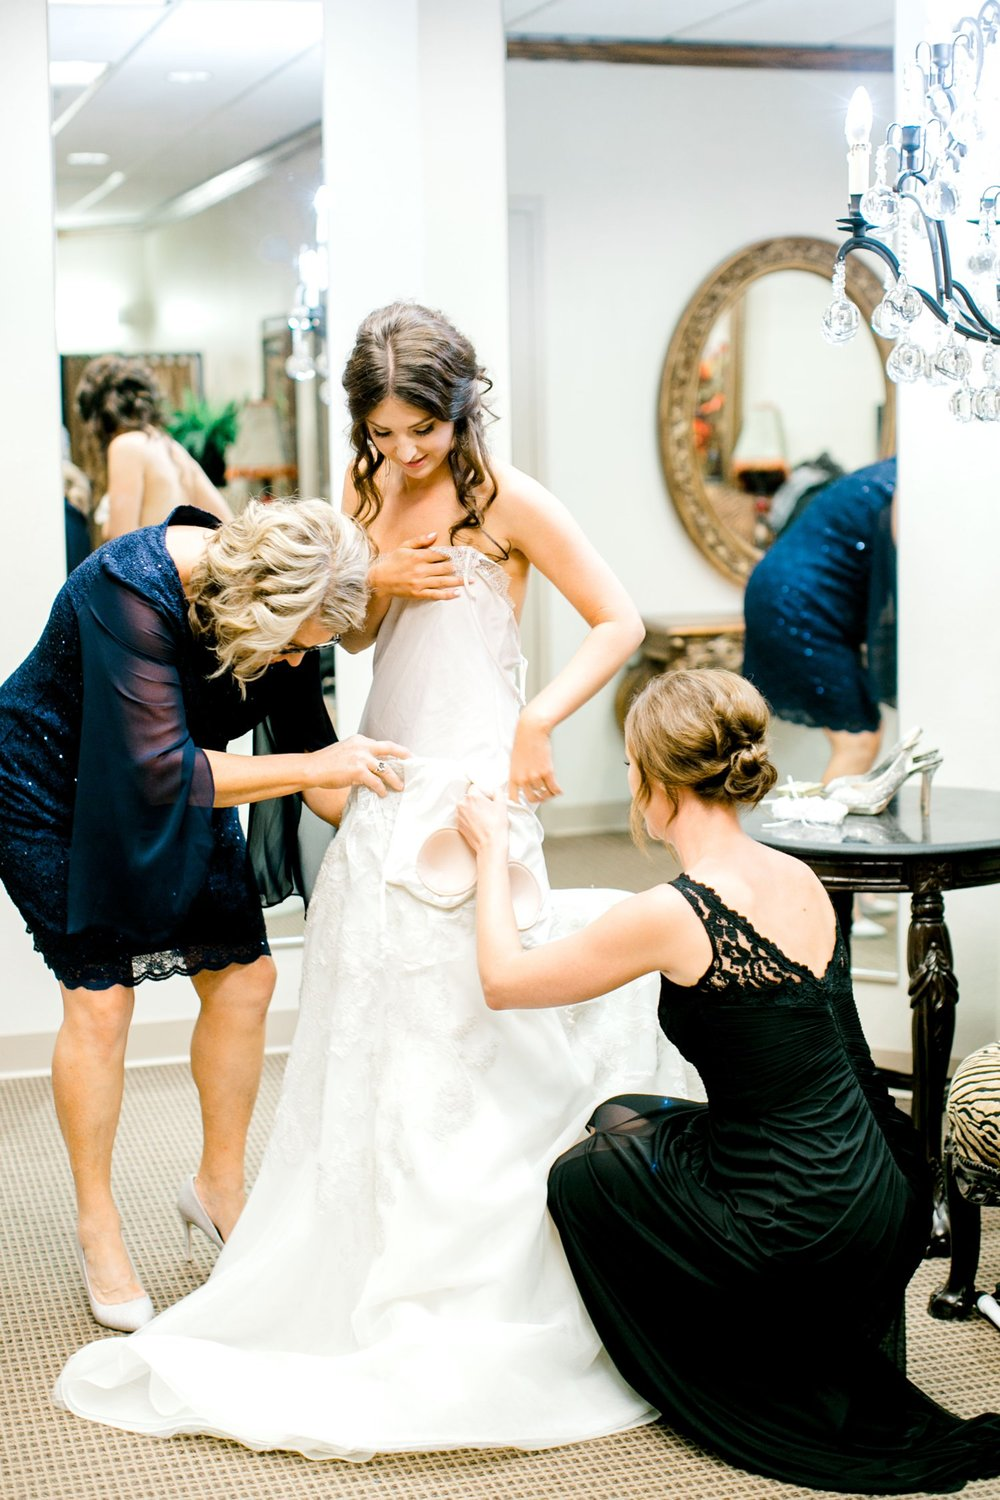 Hunter_and_Molly_Rawls_ALLEEJ_Lubbock_WEDDING_Legacy_Event_Center_0004.jpg